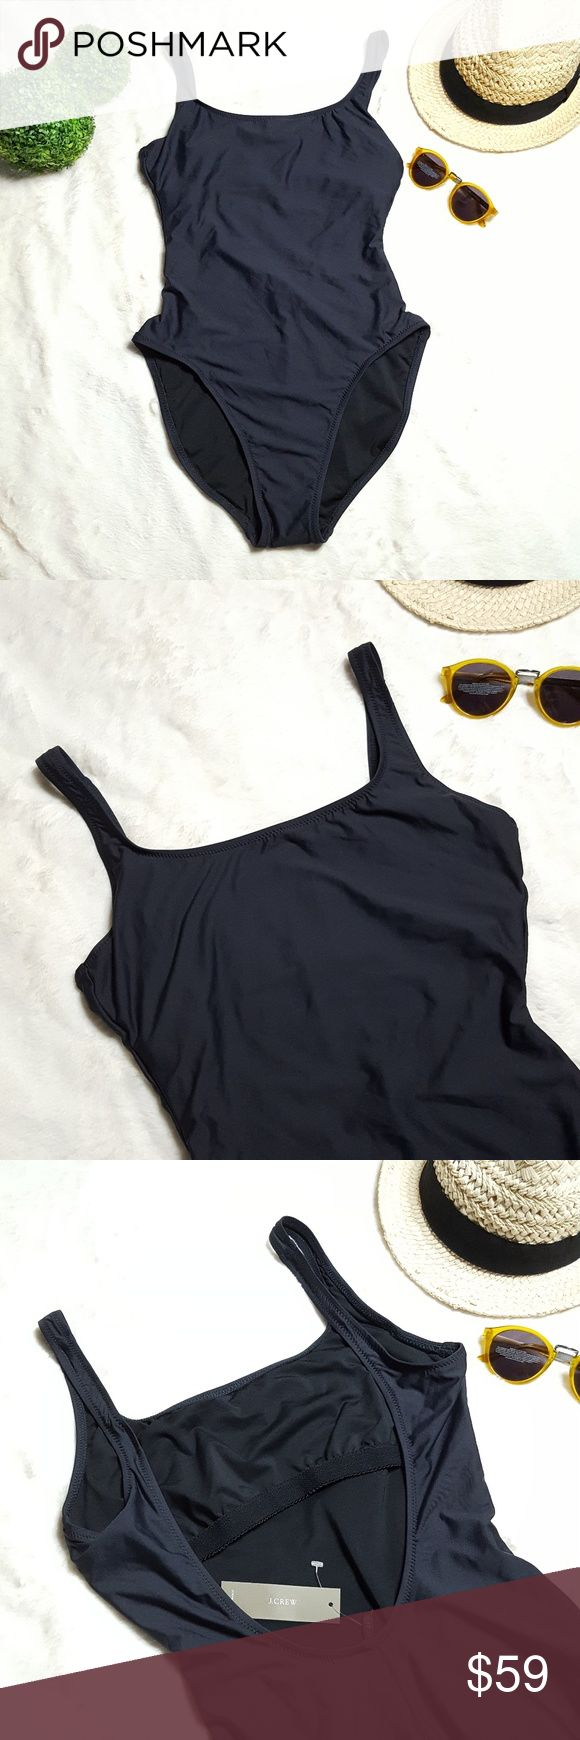 NEW J.Crew Scoopback One-piece Swimsuit New with tags. The best selling swimsuit is back, Resurrected from the J.Crew archives, this sexy '90s throwback is ready for the water. Dark charcoal in color with Hygienic liner still intact. This item is specially designed for women size 8 with long torso (LT). Comes from a smoke-free and pet-free home. Bundle for discounts and reasonable offers are always welcome.   85% Tactel Polyamide/15% Elastane Lining 79% Polyester/21% Elastane. J. Crew Swim…